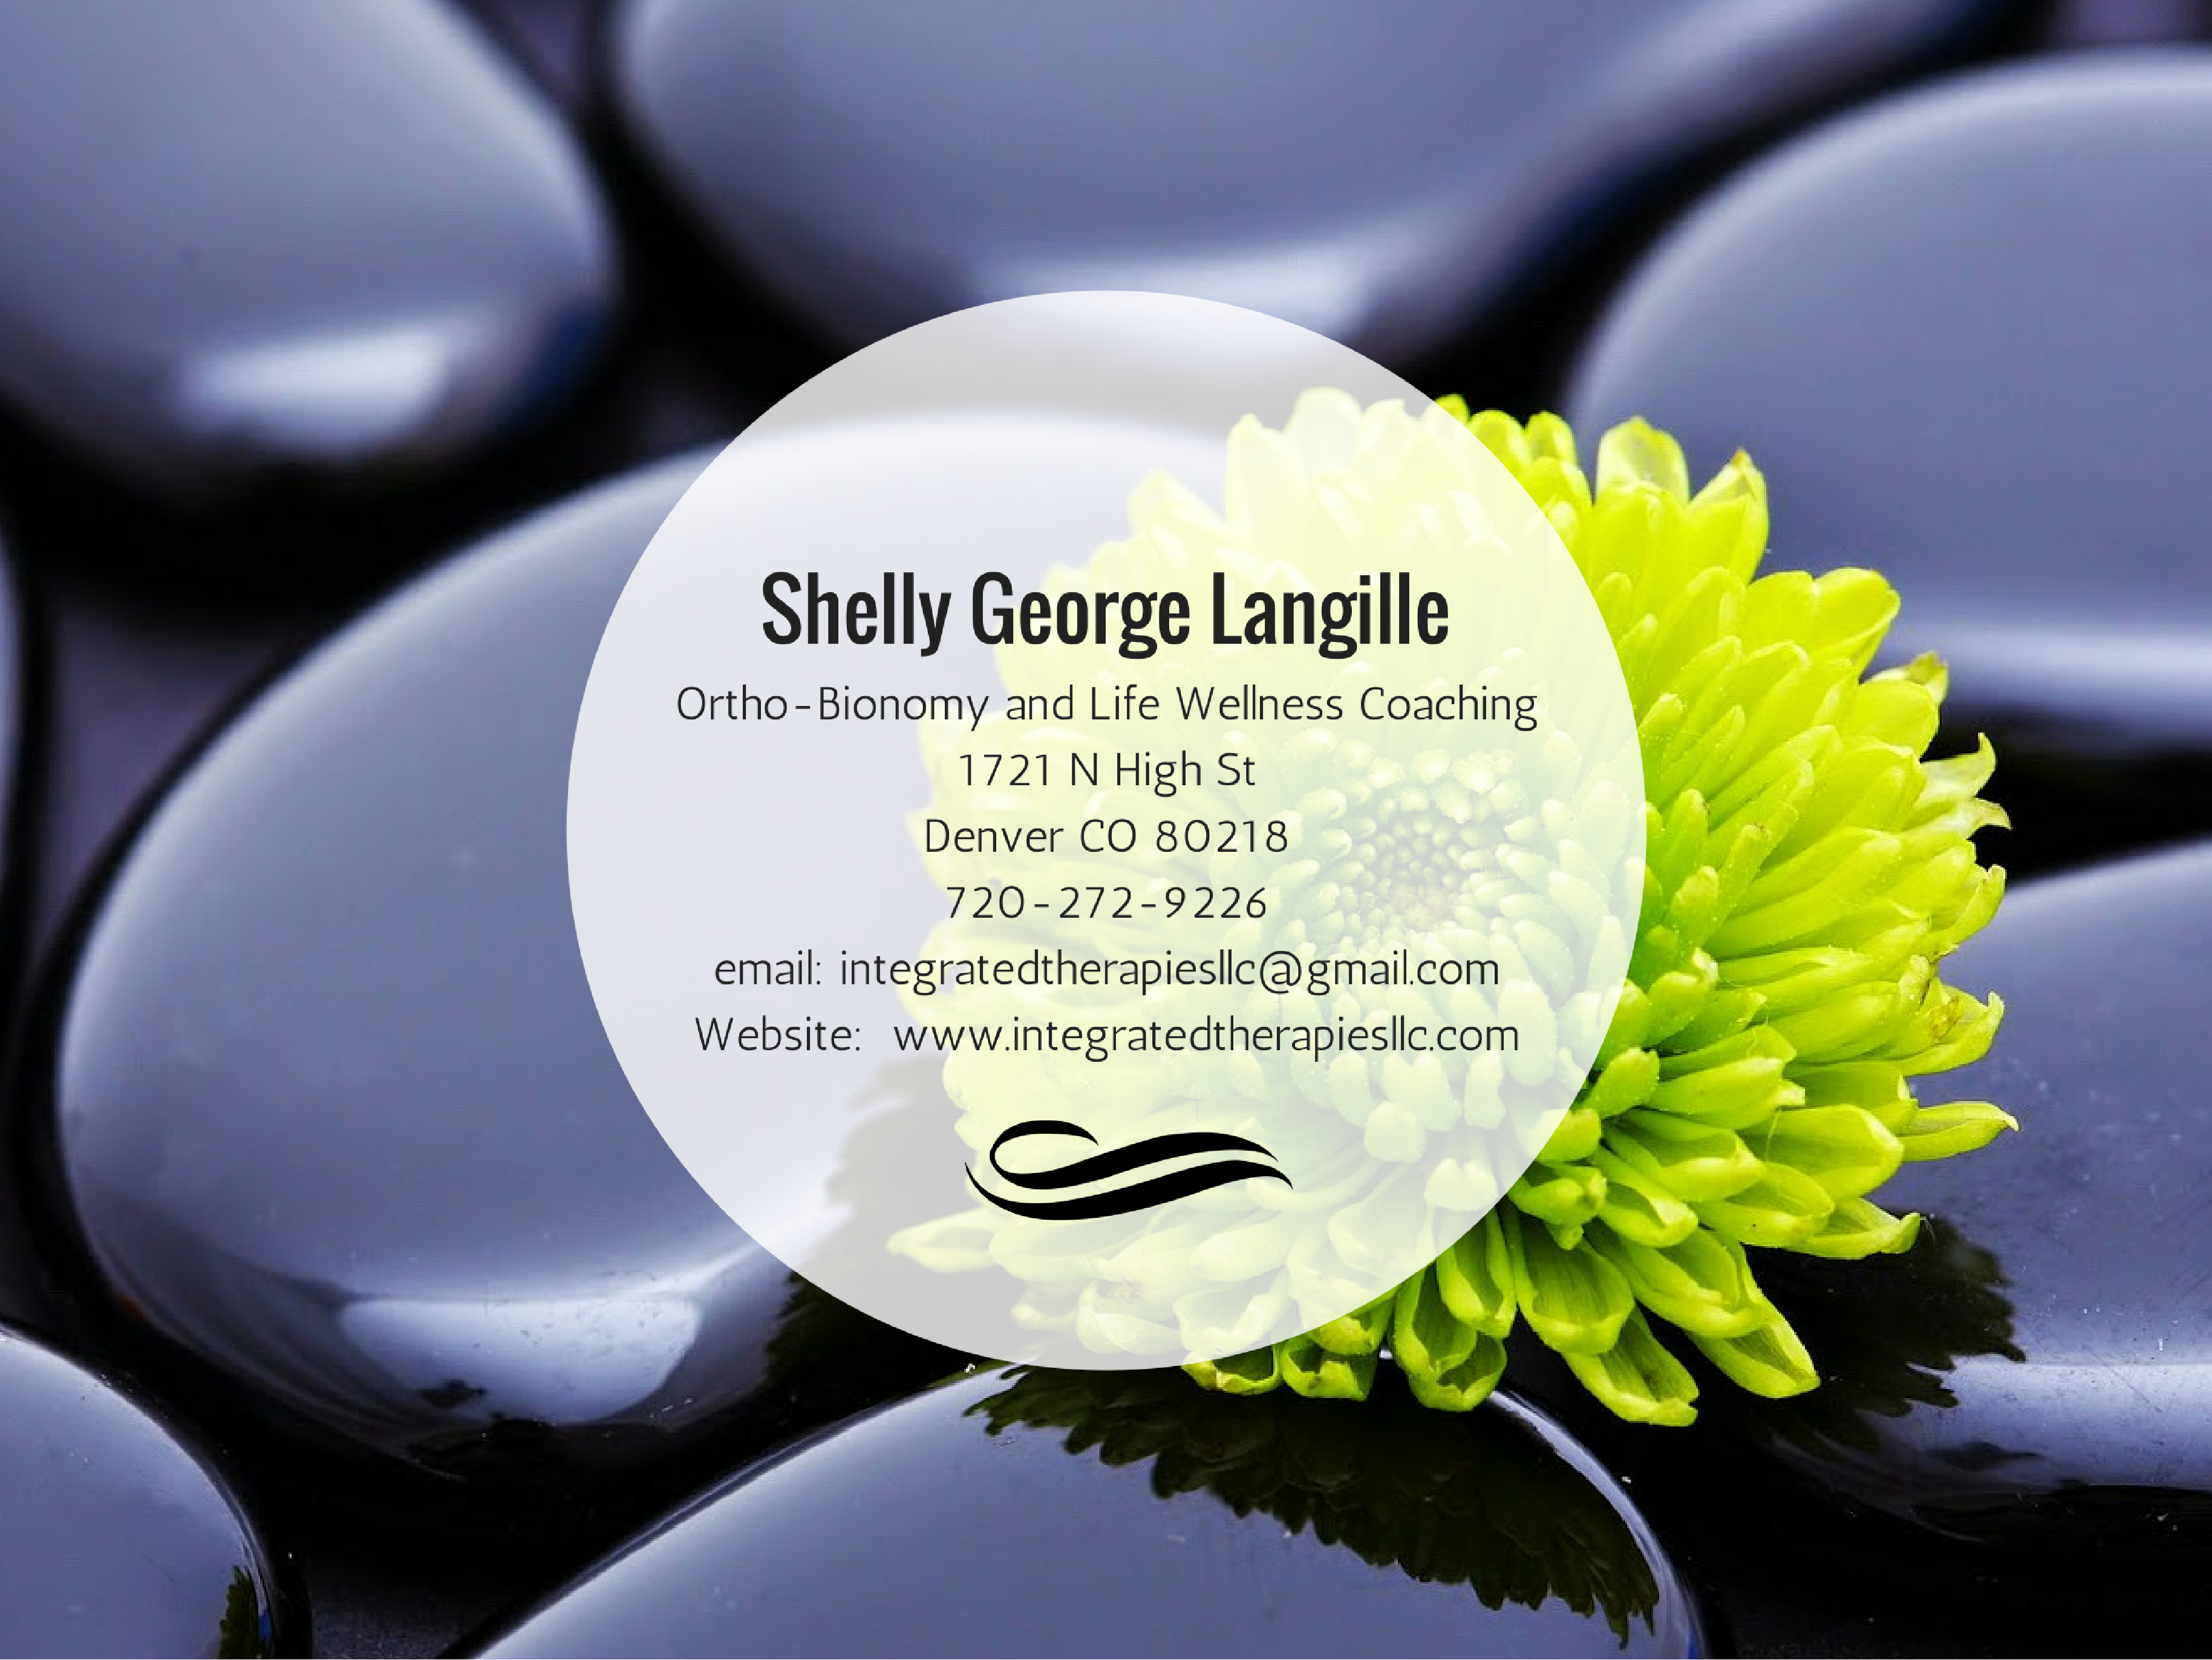 Shelly George Langille